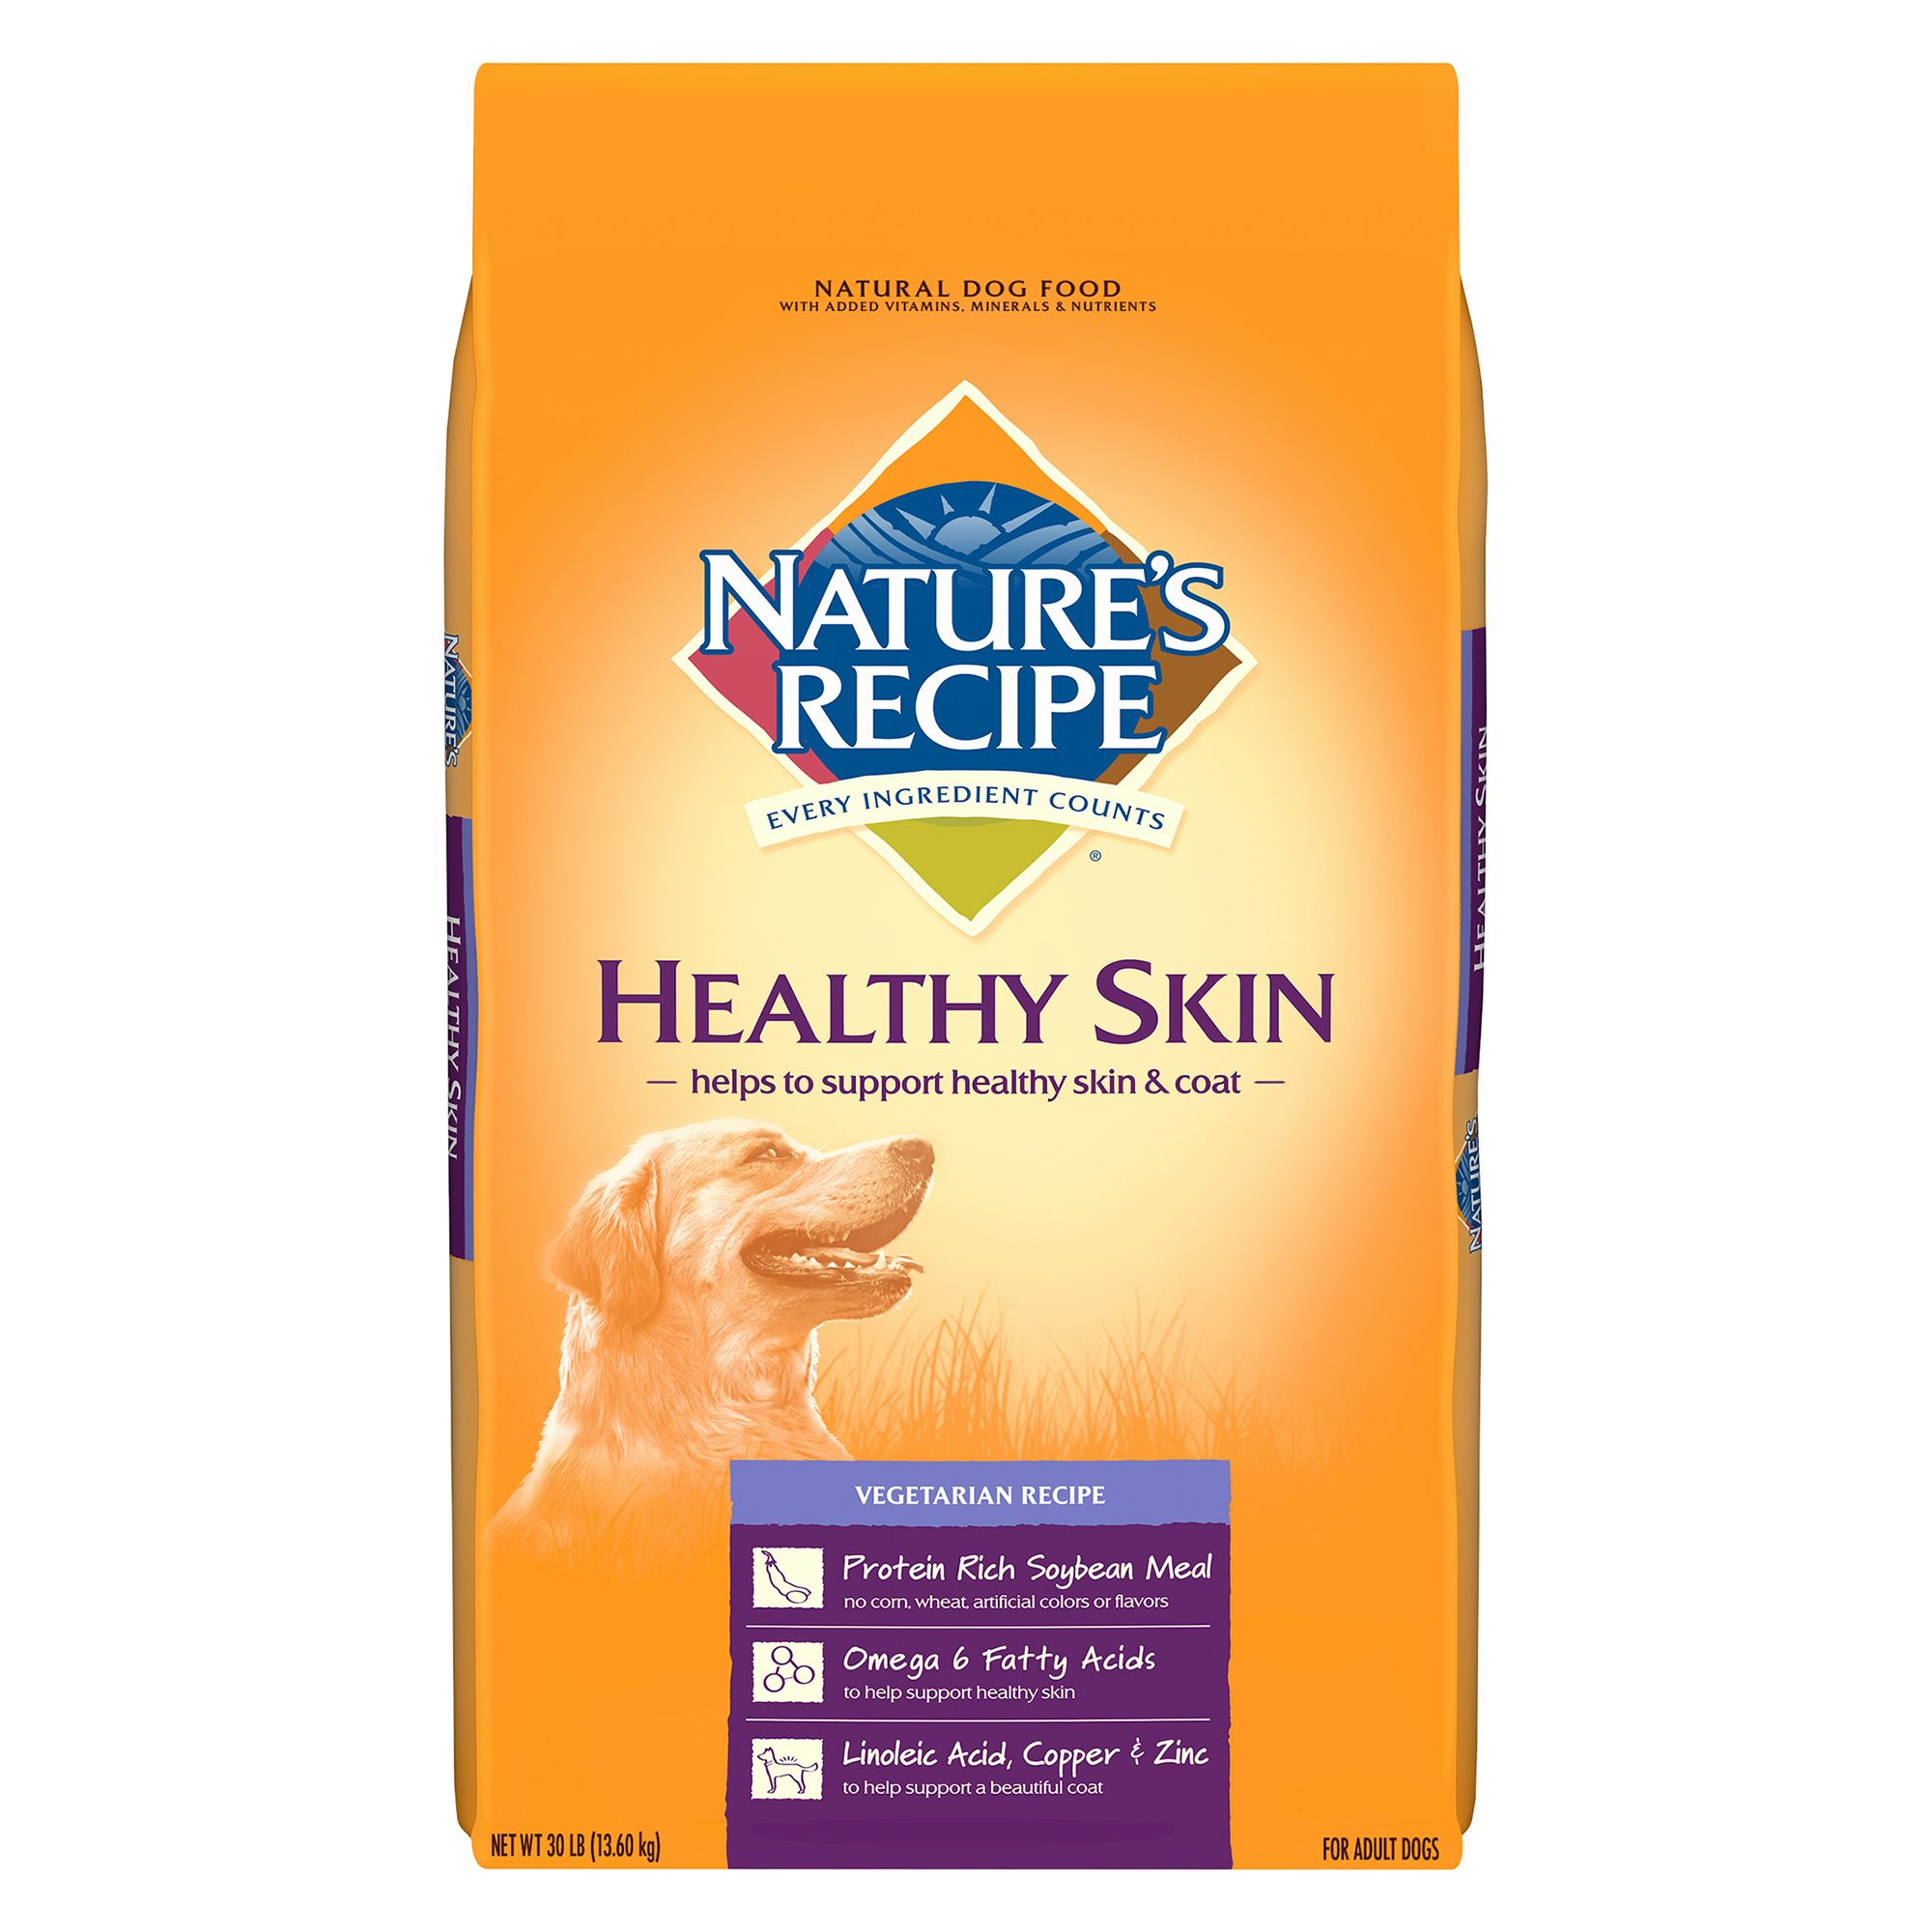 Nature's Recipe Healthy Skin Adult Dog Food size: 30 Lb, Vegetarian, Kibble, Rice